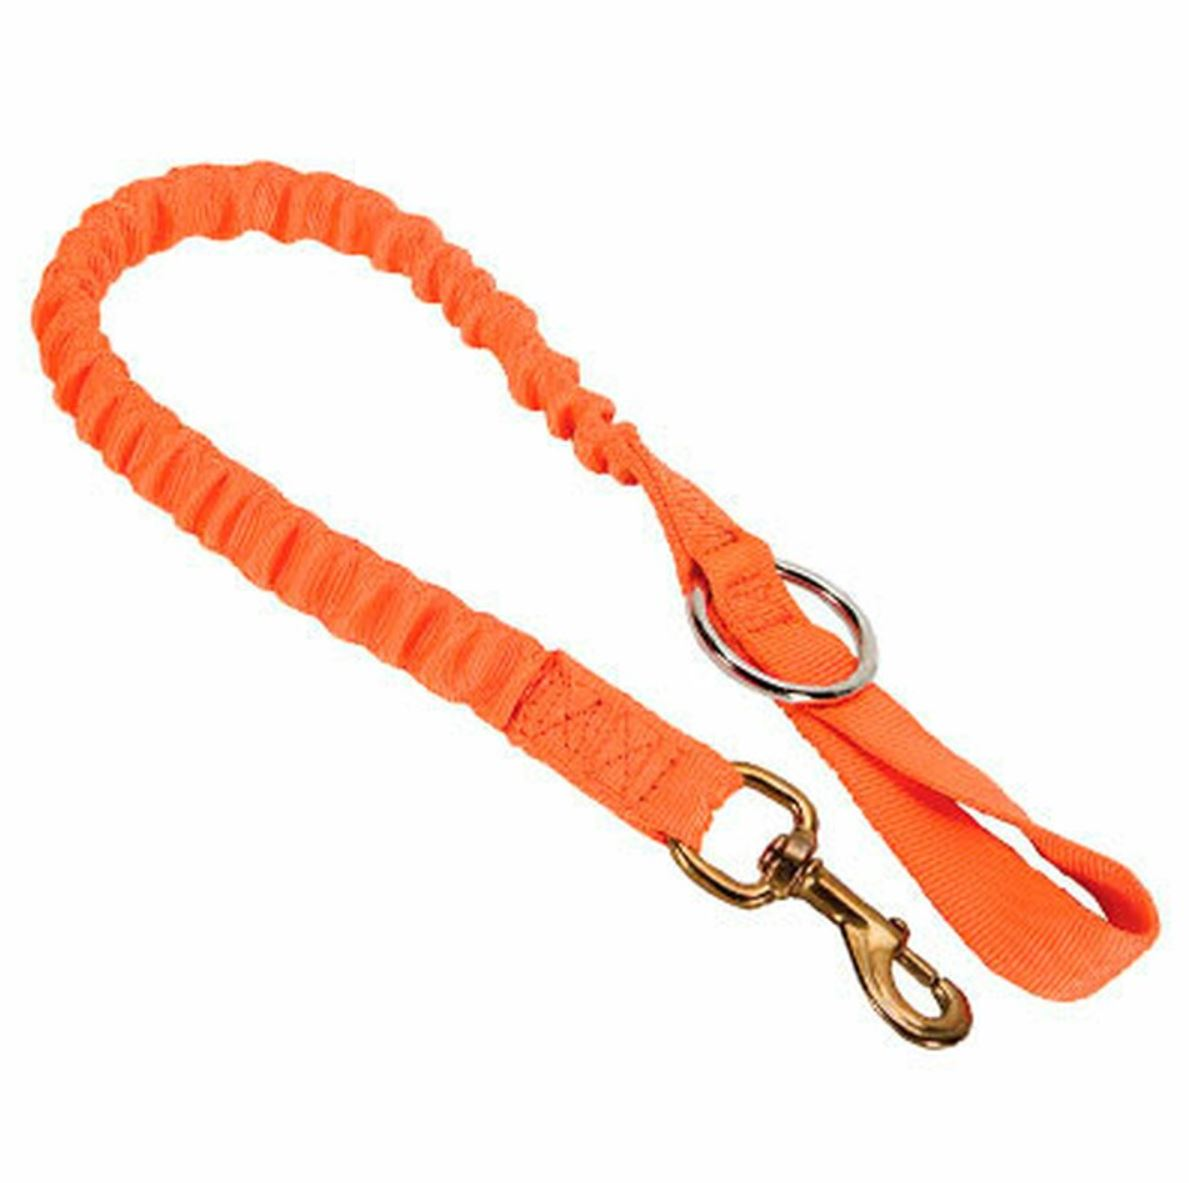 Weaver Bungee Chainsaw Strap